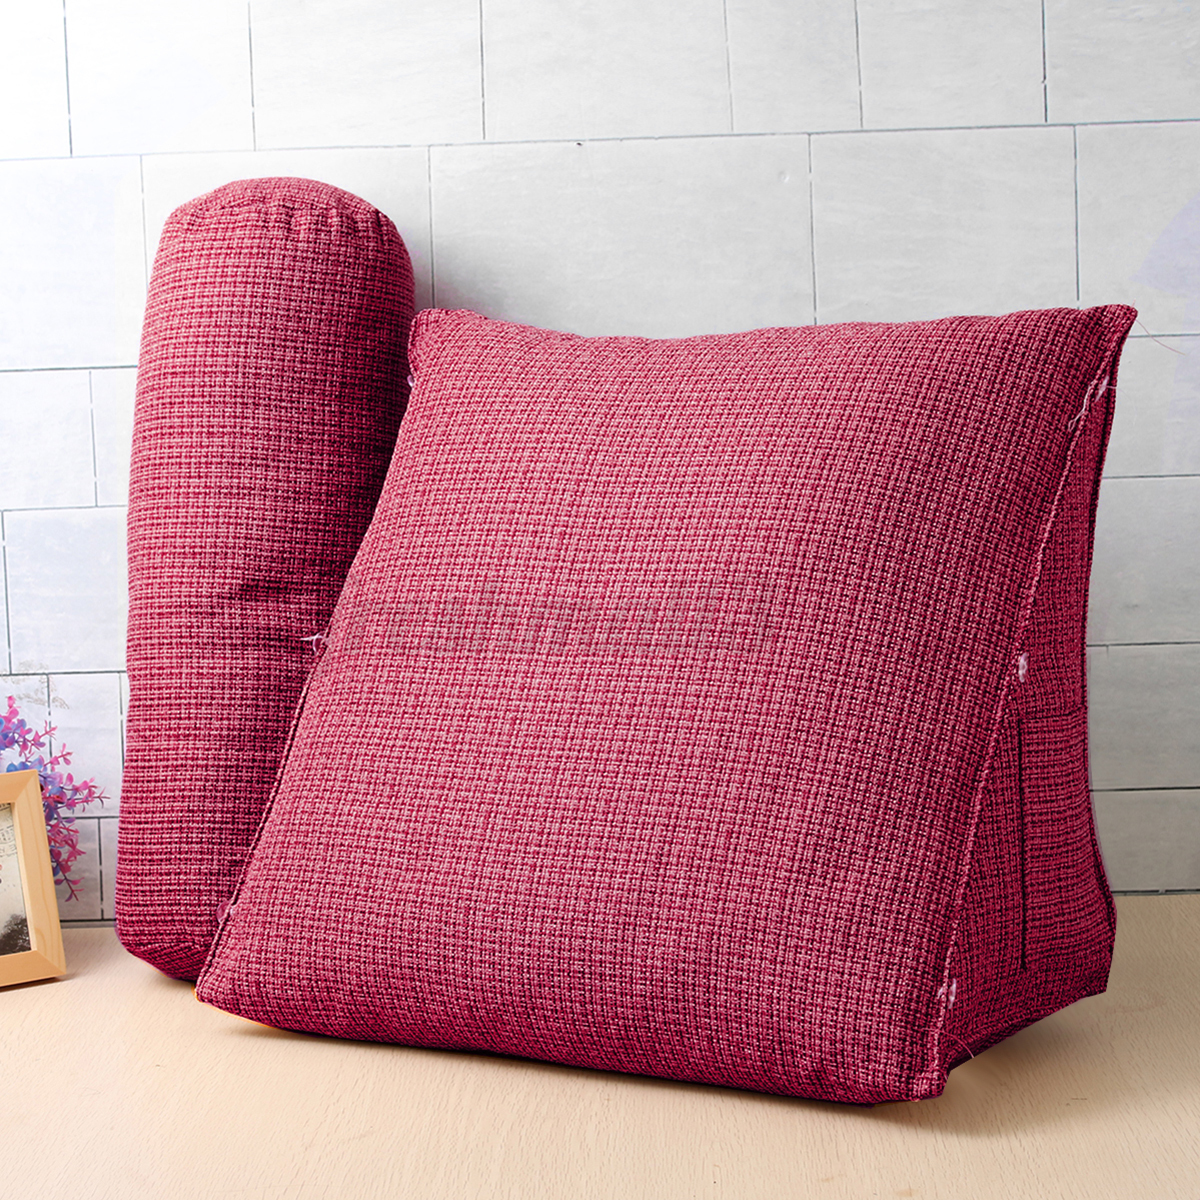 Big adjustable back wedge cushion pillow sofa bed office for Chair neck support attachment uk